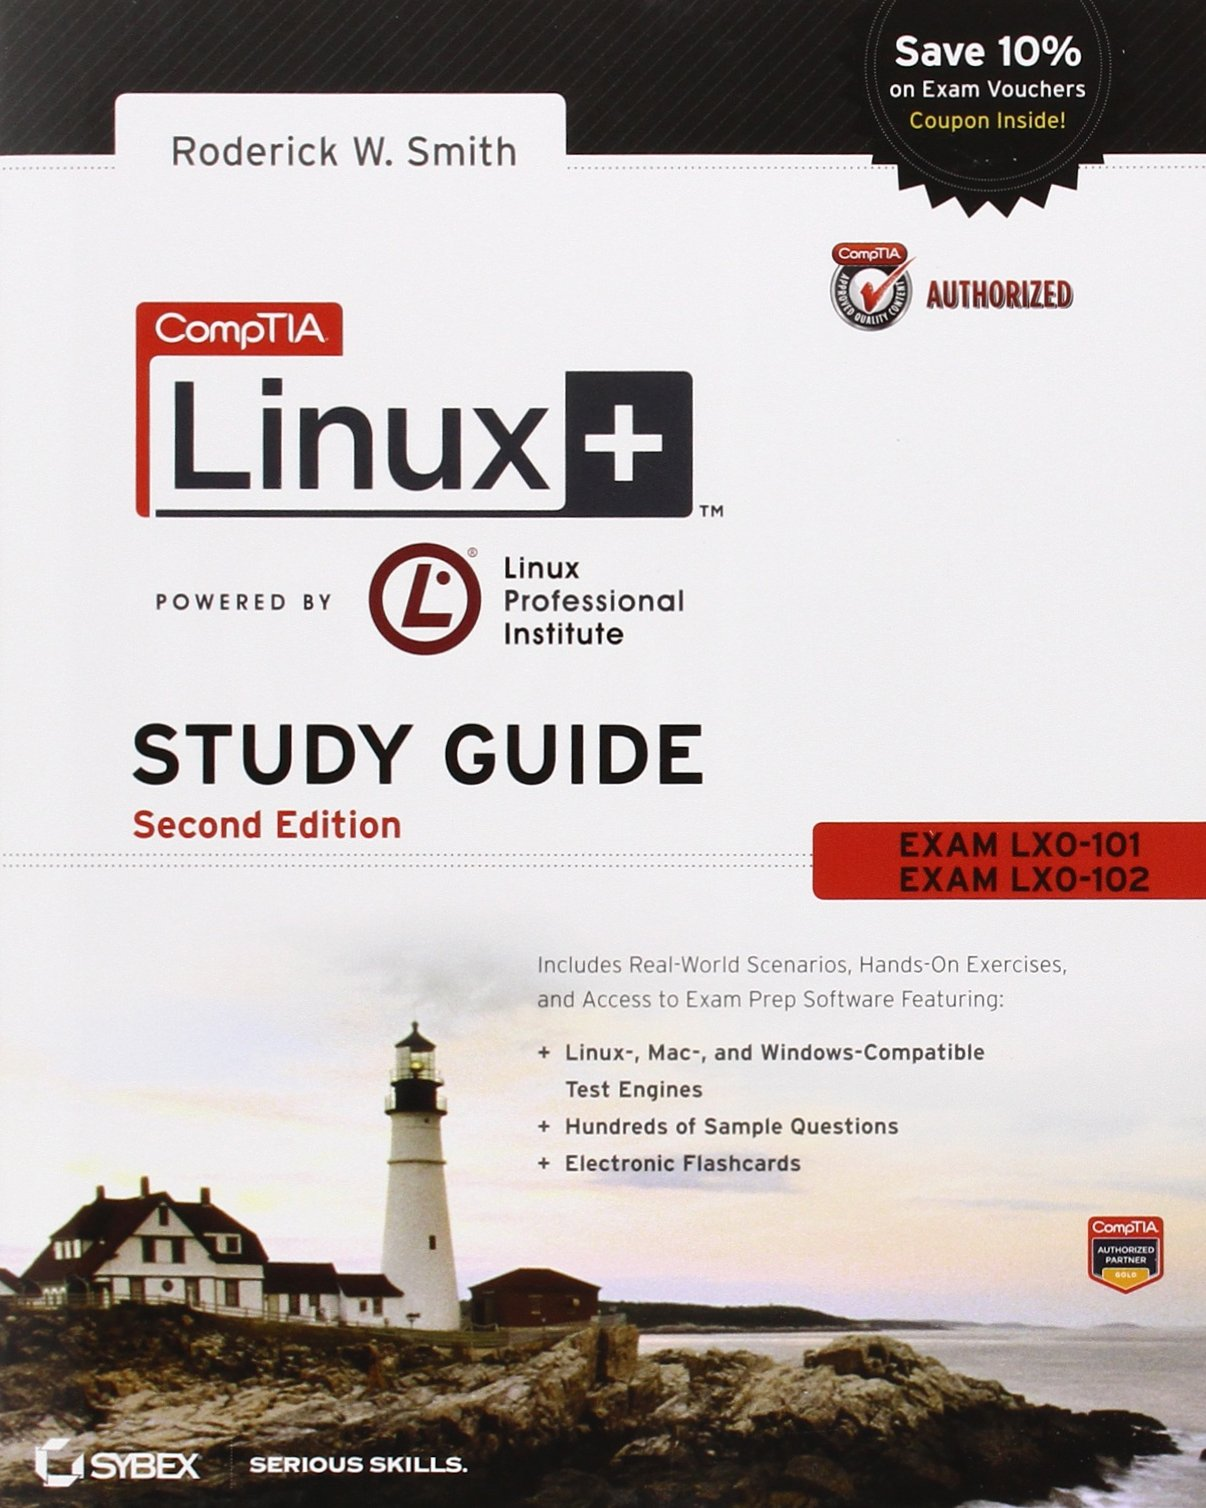 Amazon.fr - CompTIA Linux+ Study Guide: Exams LX0-101 and LX0-102 -  Roderick W. Smith - Livres